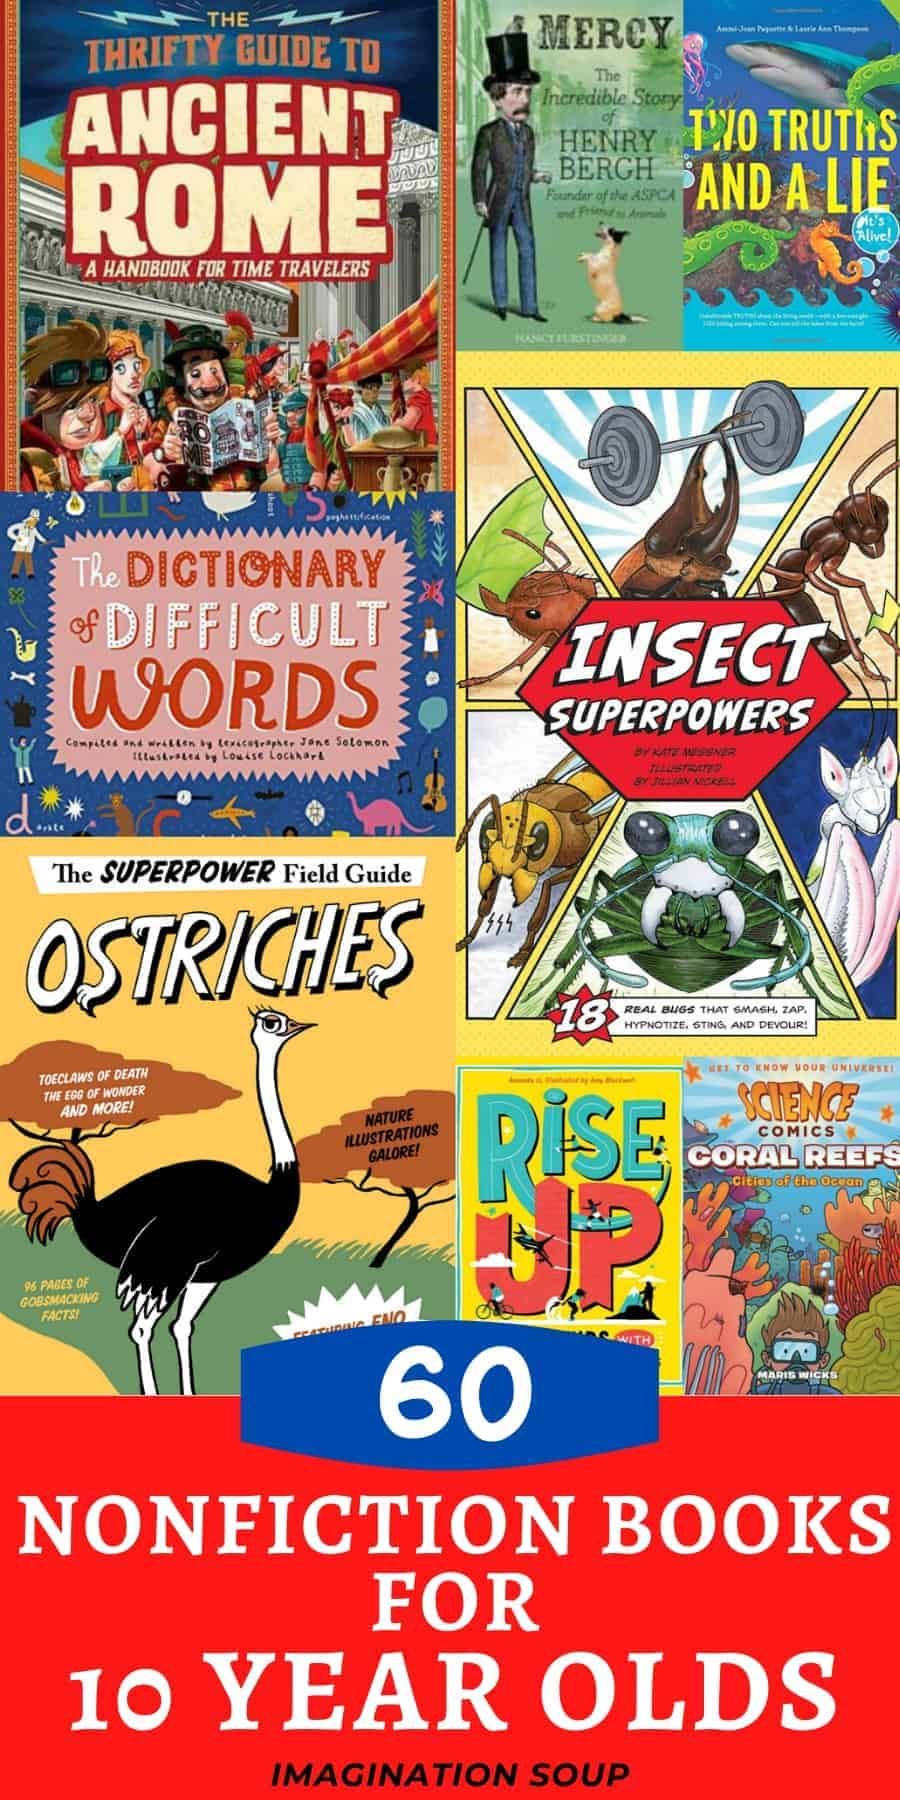 best nonfiction children's books for 10 year olds